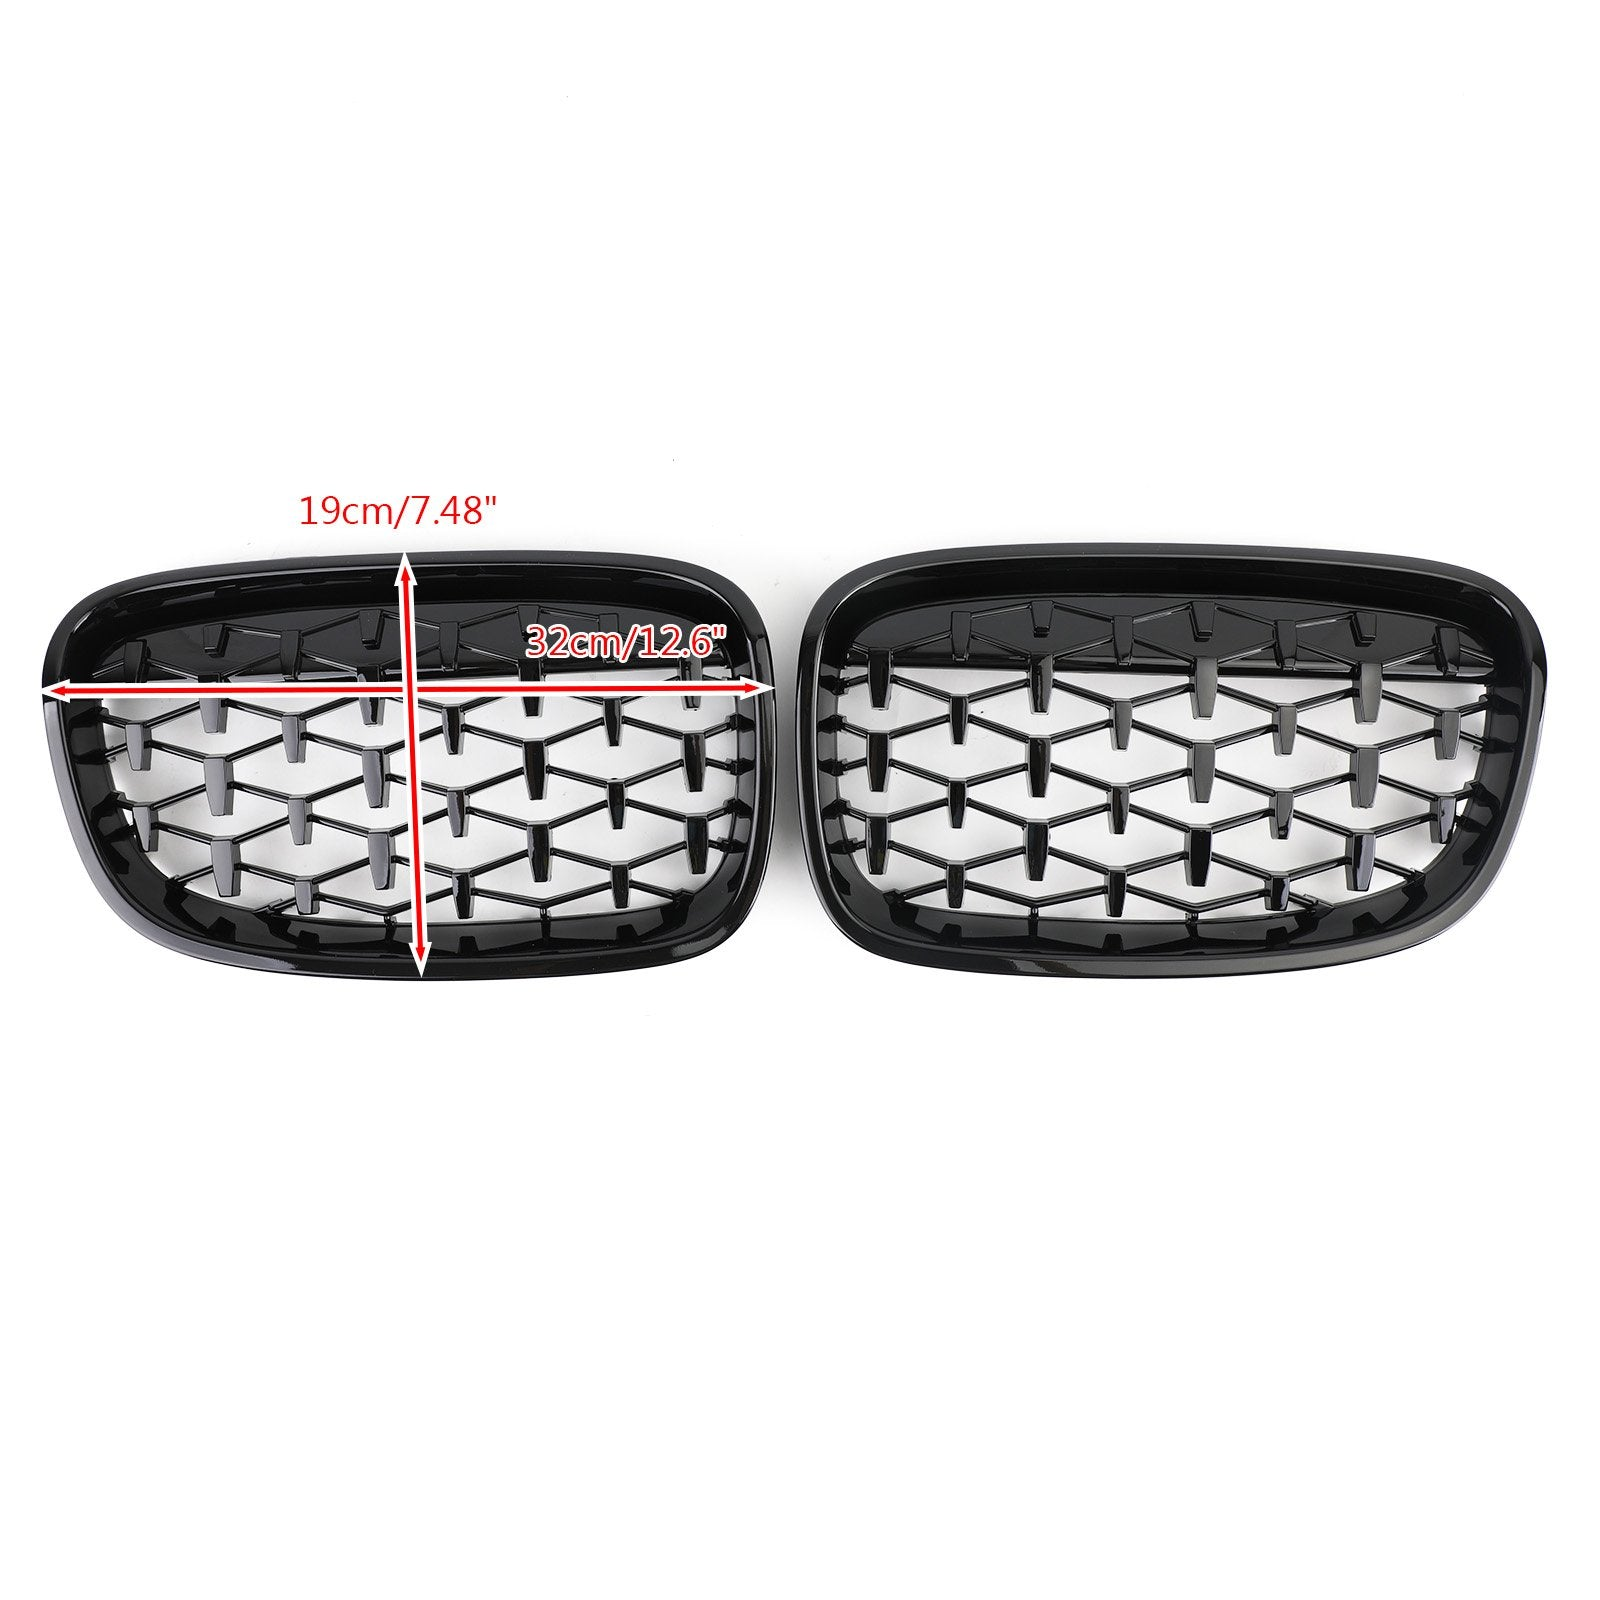 Meteor Black Front Bumper Cover Grille Fit 2012-2014 BMW 1Series F20 116i 118i Generic